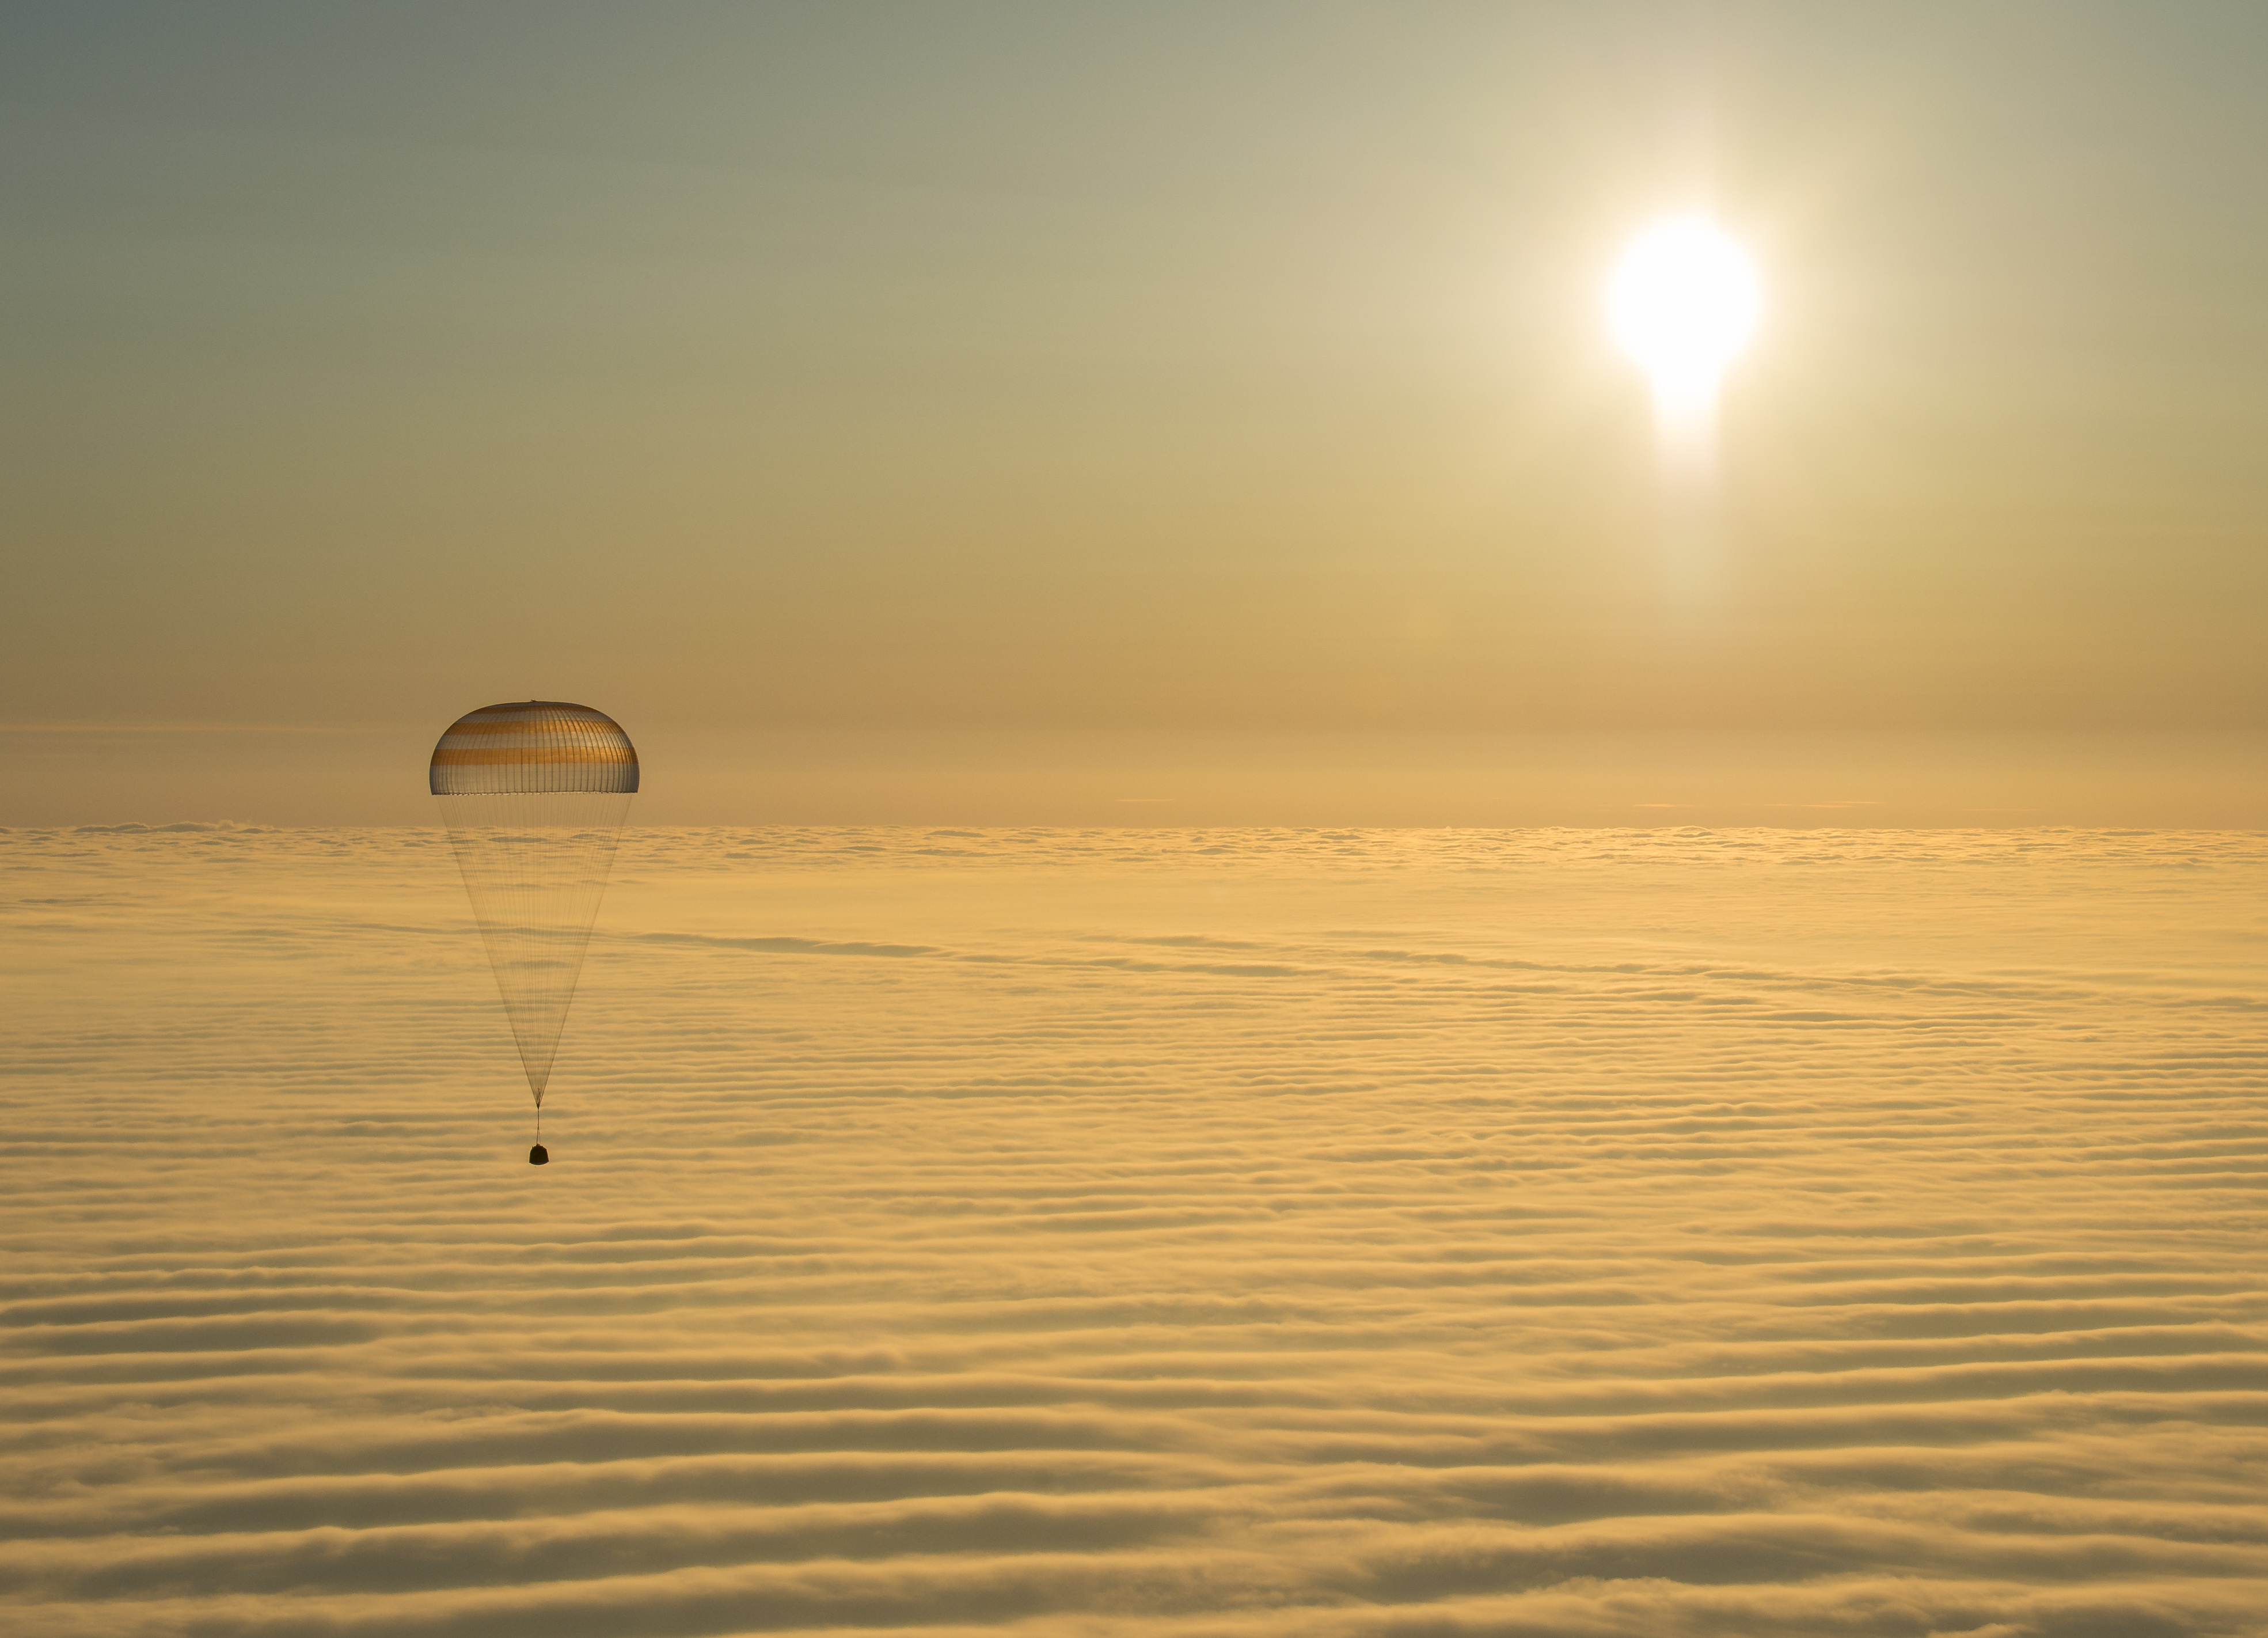 spacecraft parachute photo